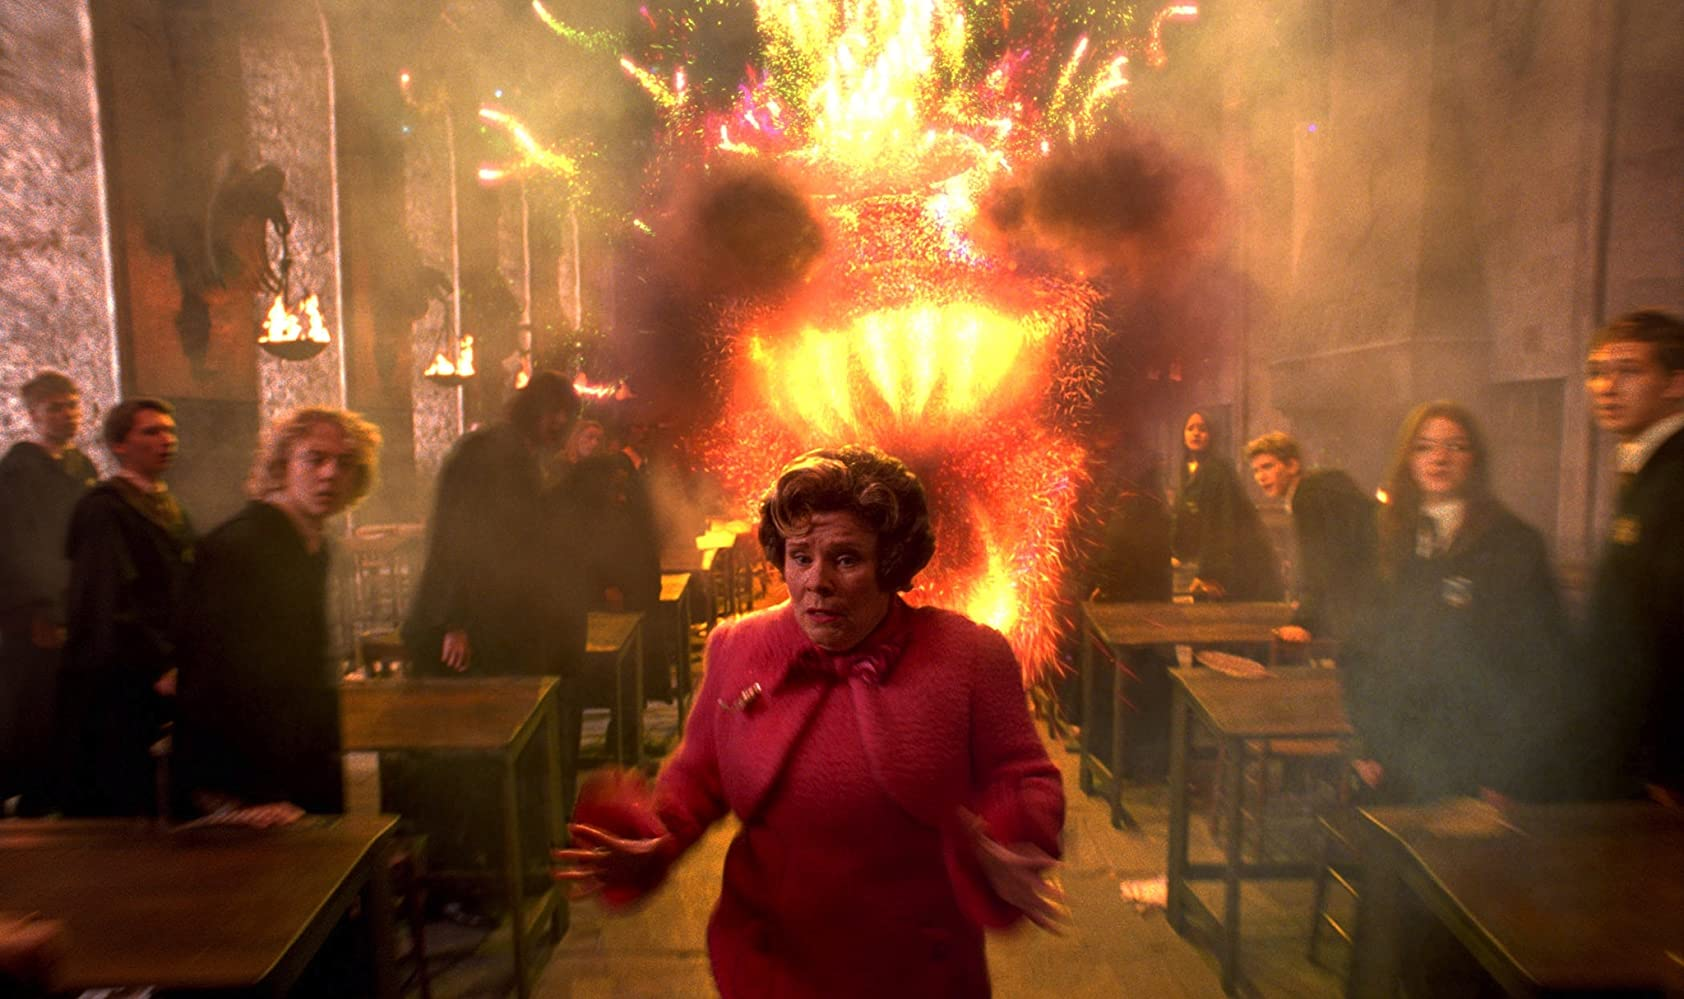 Imelda Staunton in Harry Potter and the Order of the Phoenix (2007)